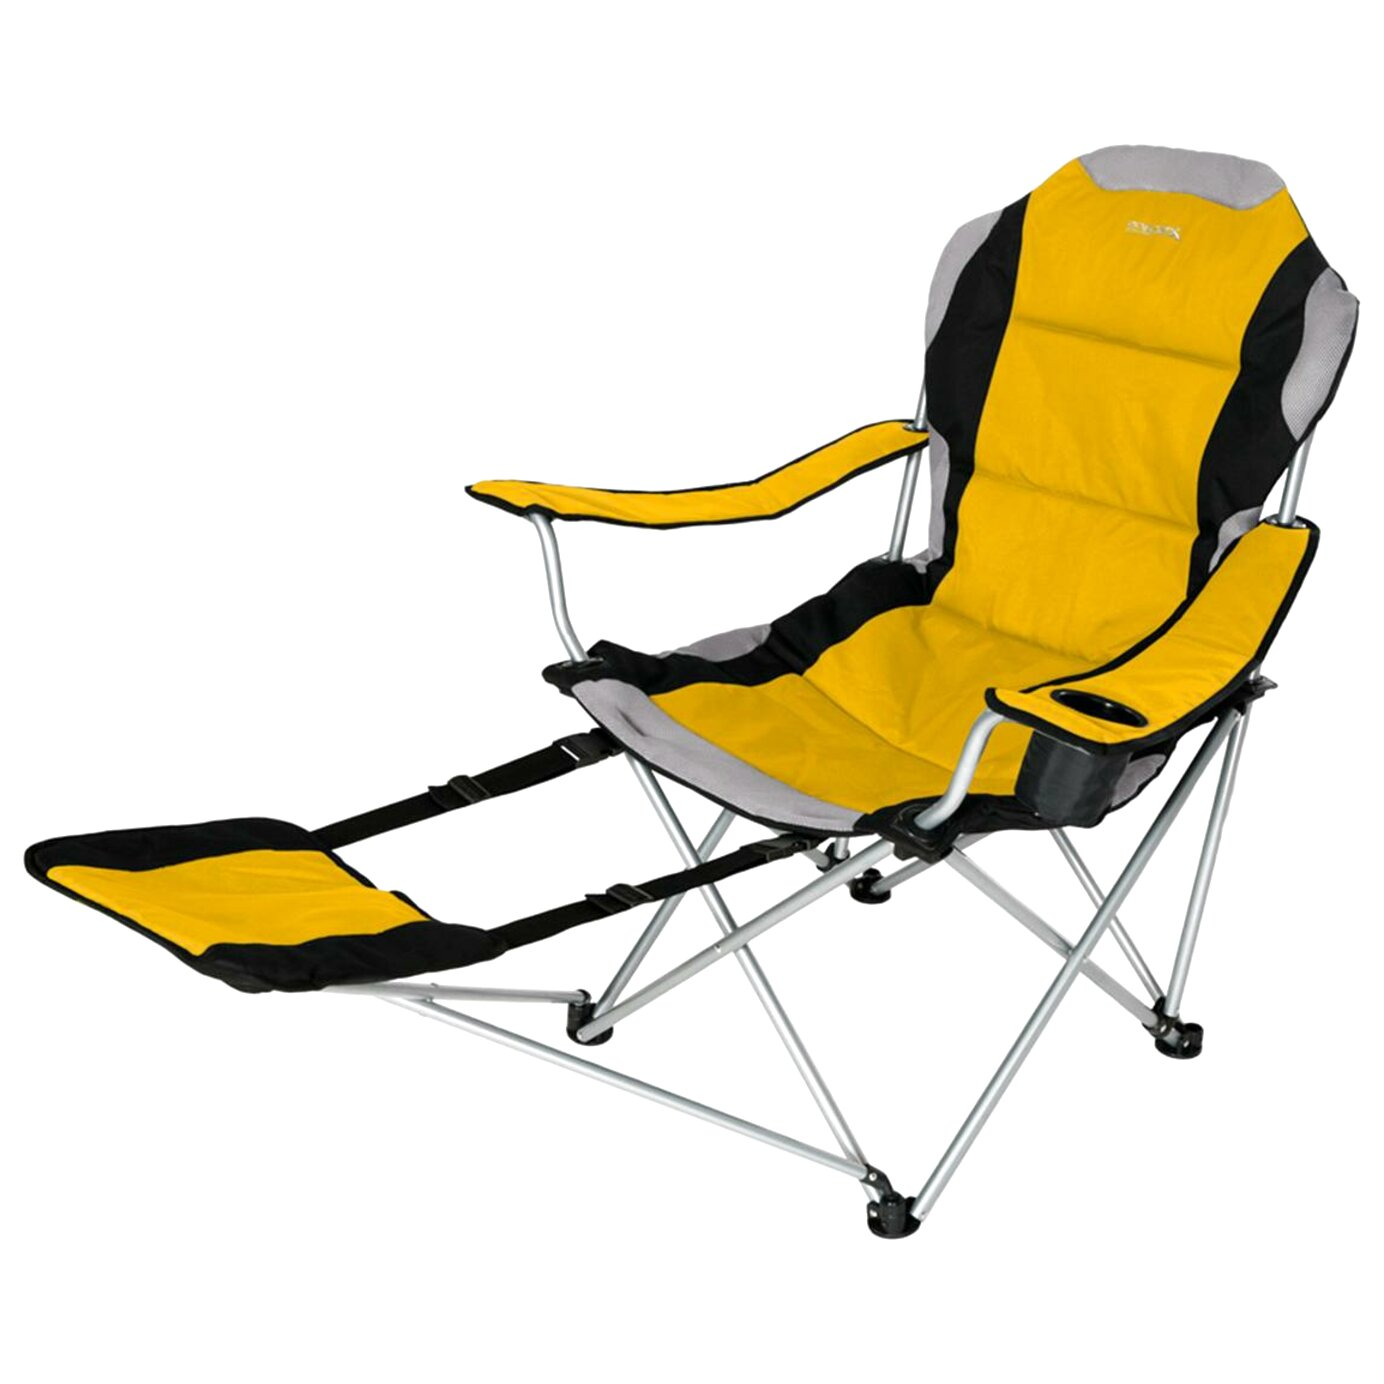 chair footrest for sale